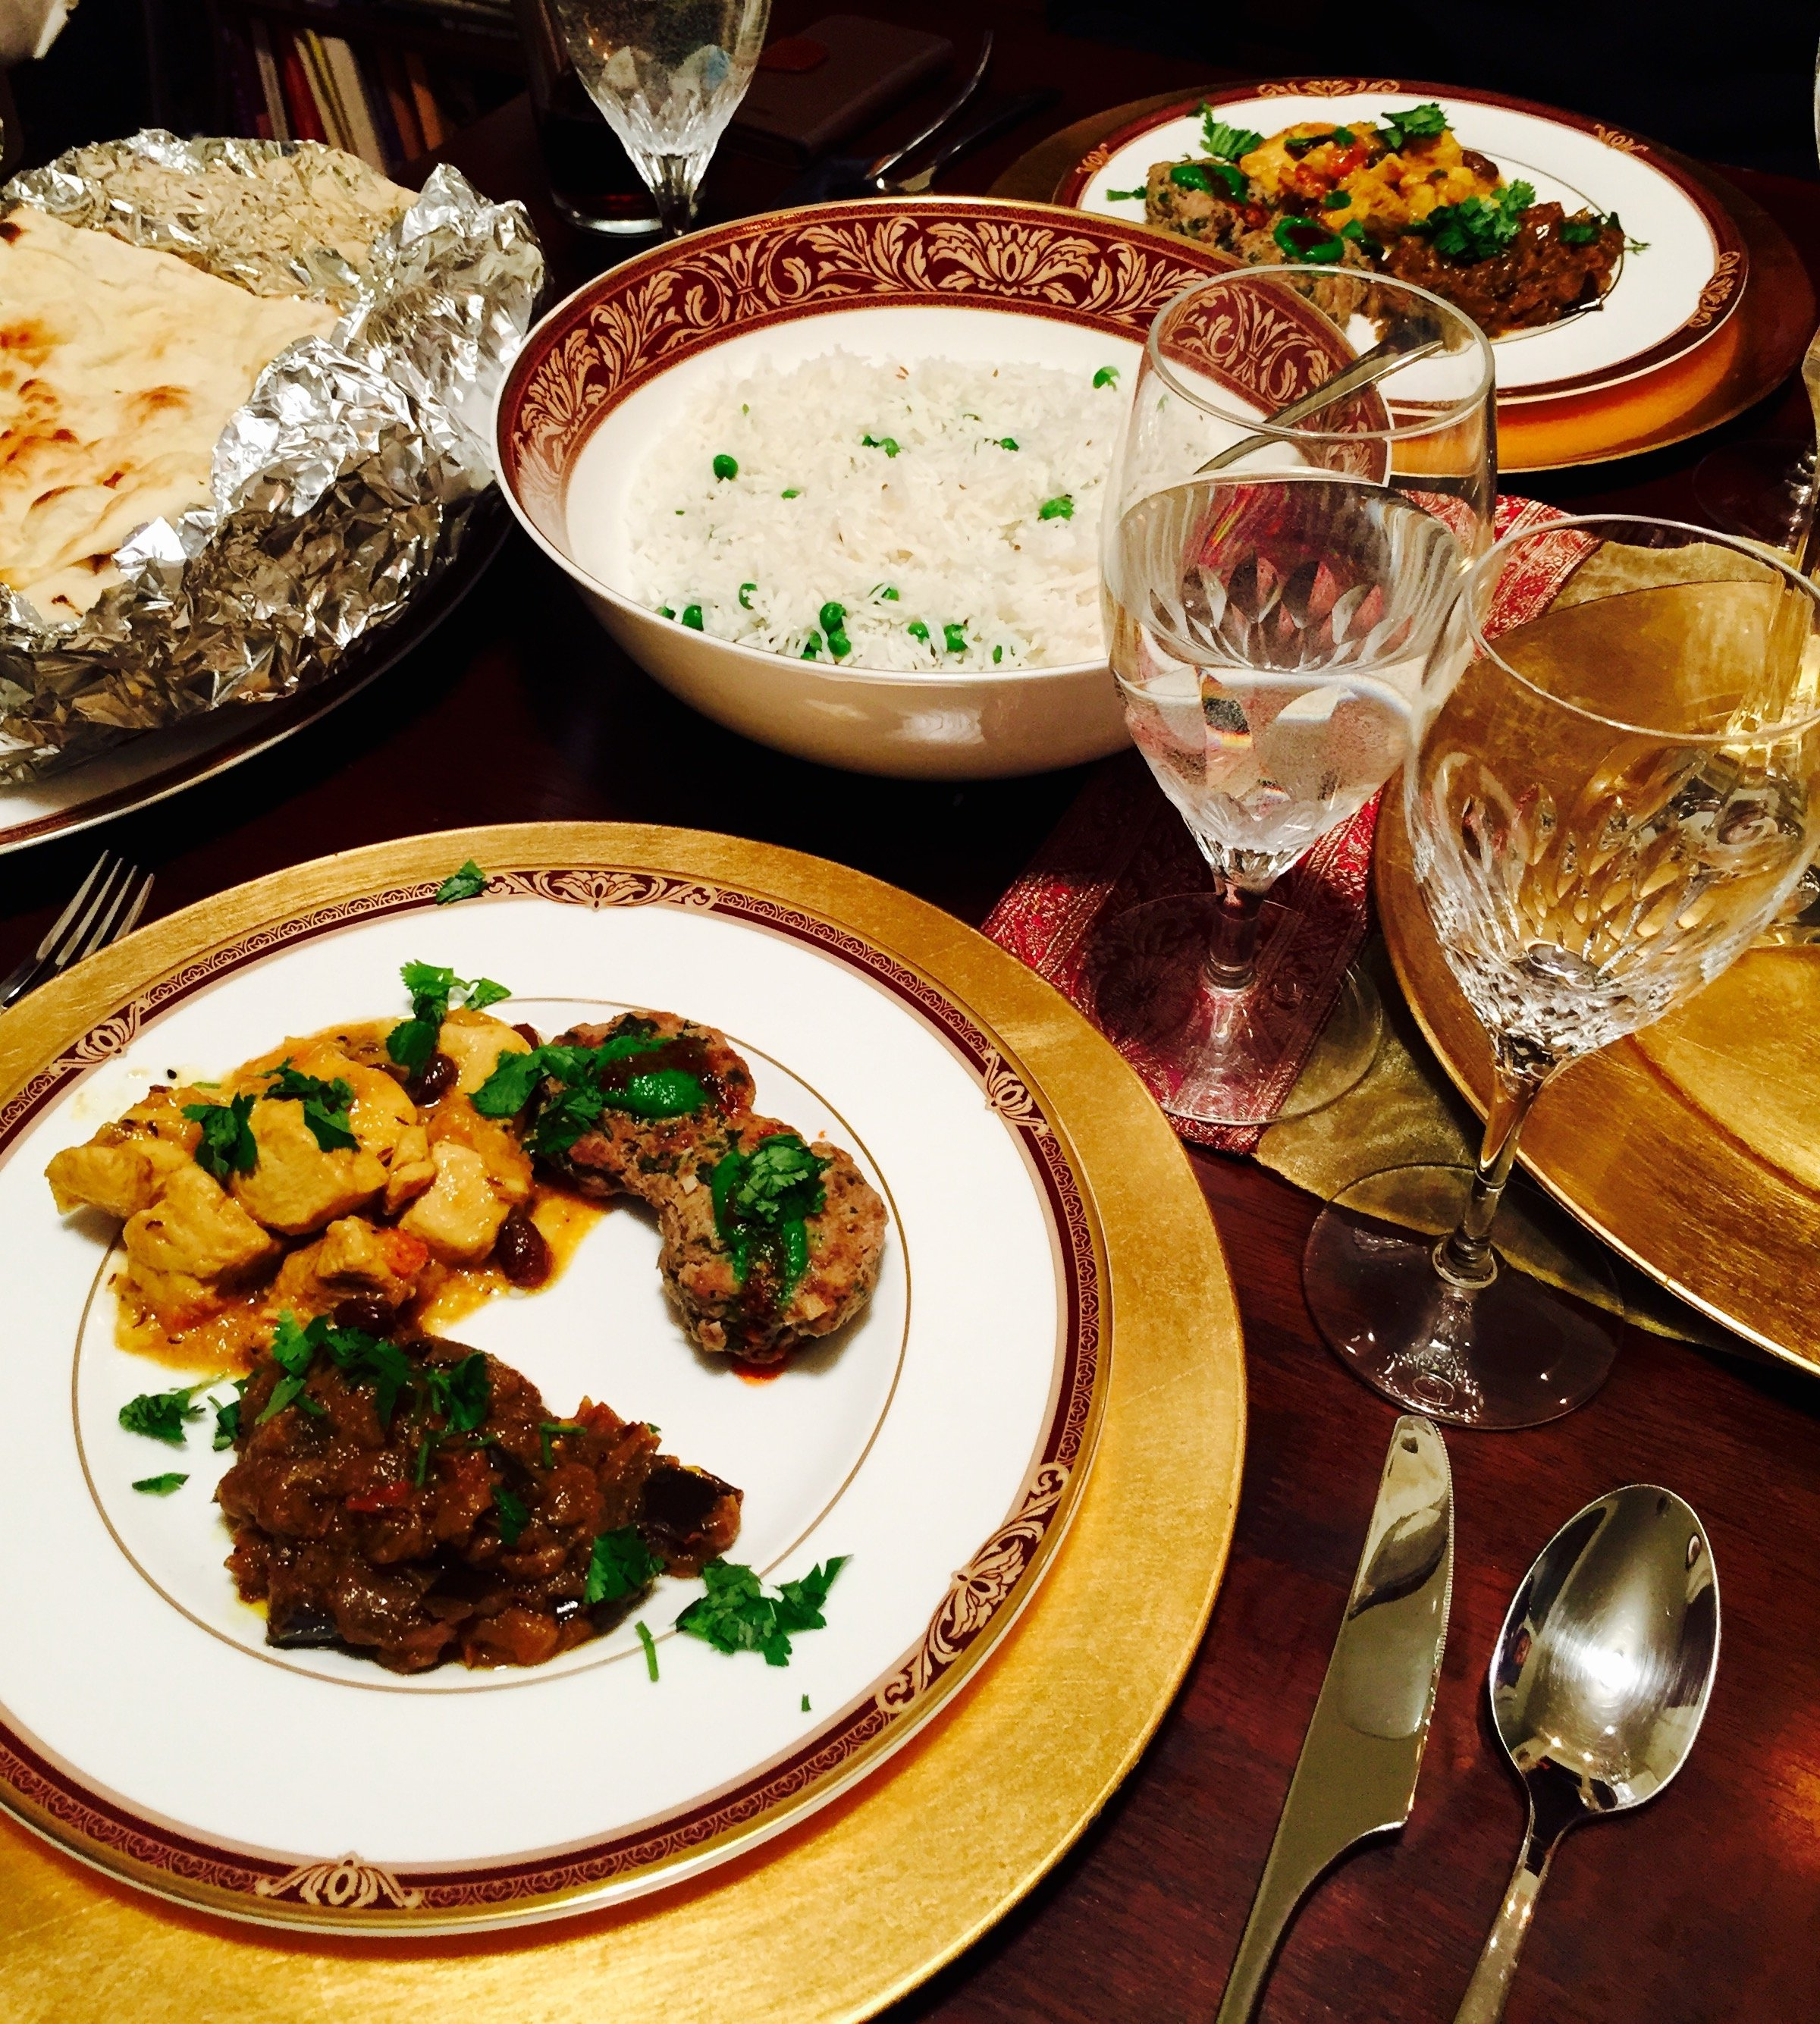 10 Attractive Easy Dinner Party Menu Ideas hosting an elegant indian dinner party big apple curry 2020